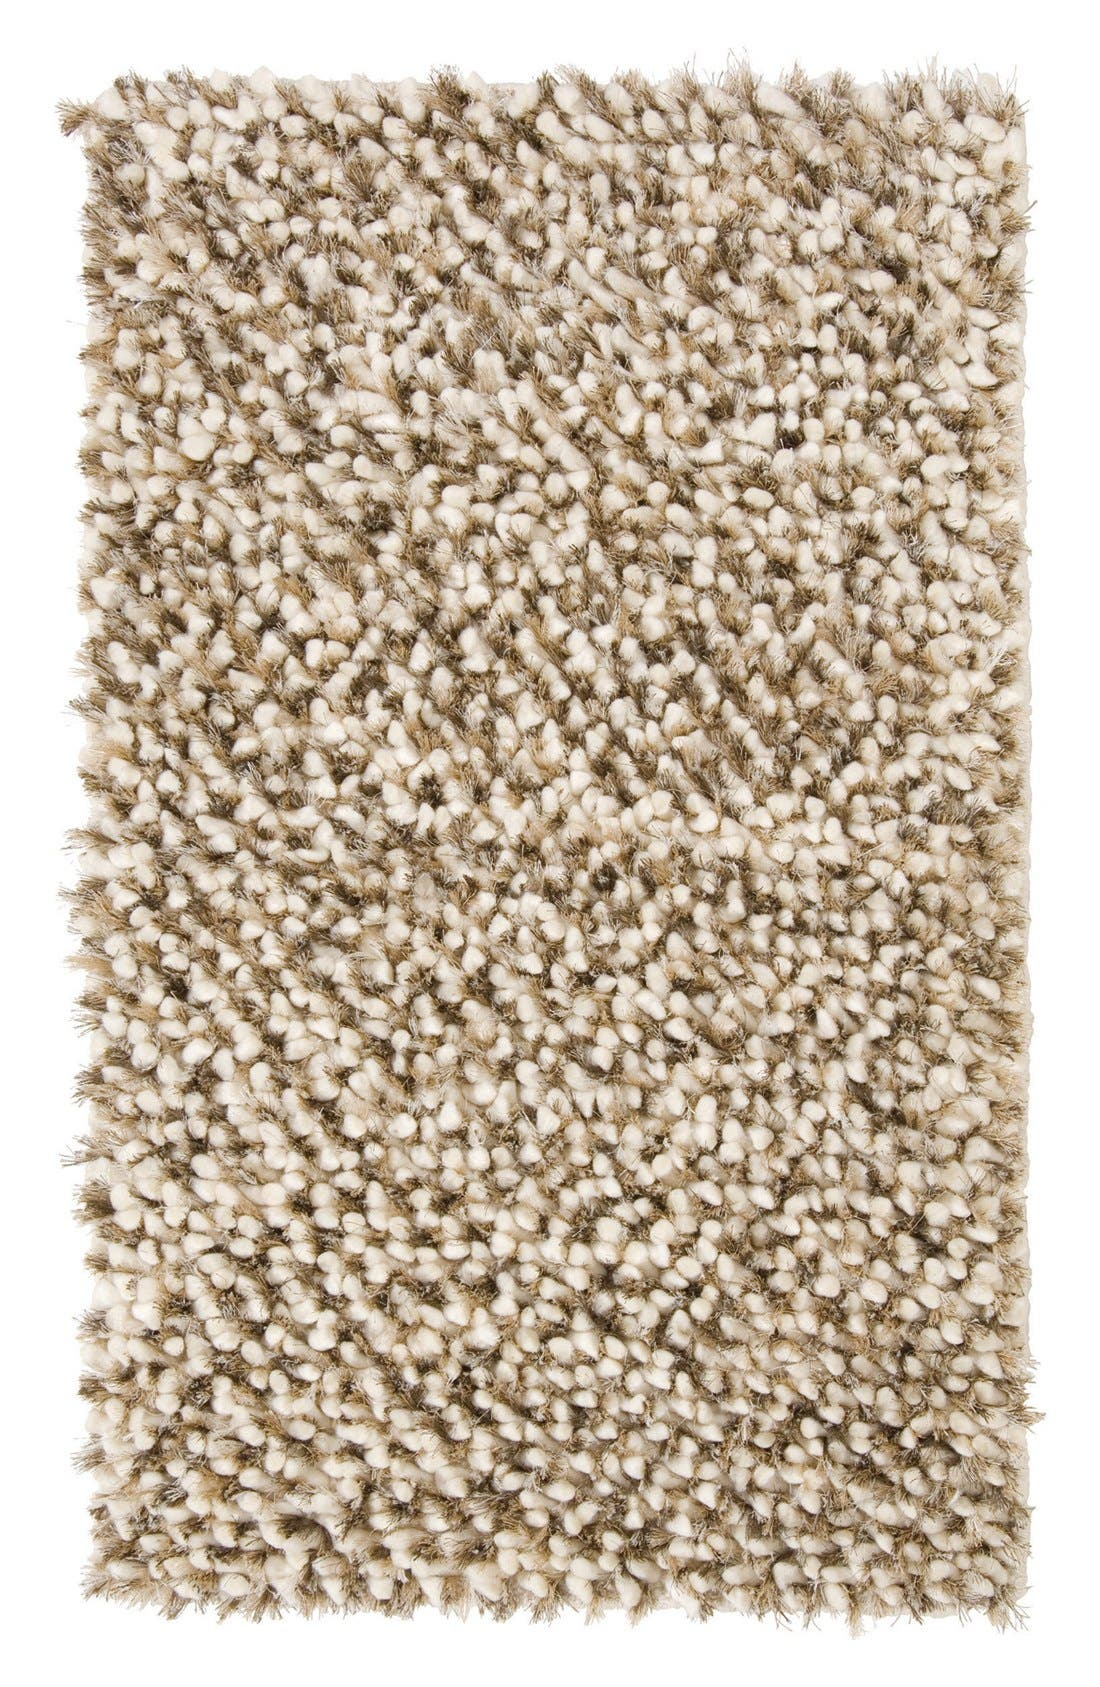 Marshmallow Handwoven Shag Rug,                             Main thumbnail 1, color,                             250